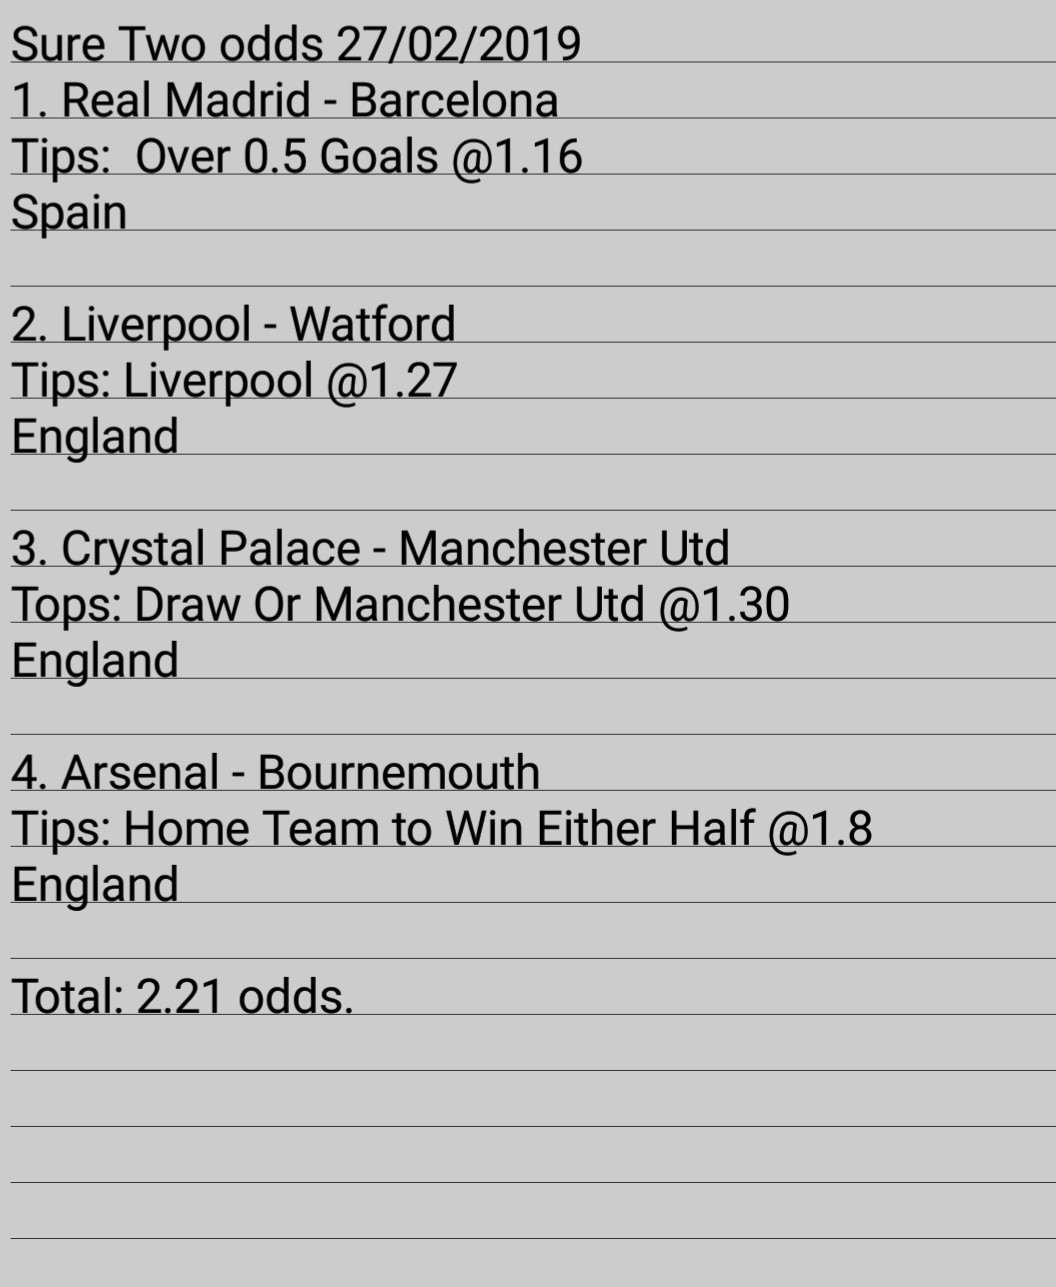 Daily Two Odds 27/02/2019 | Surest Tipz